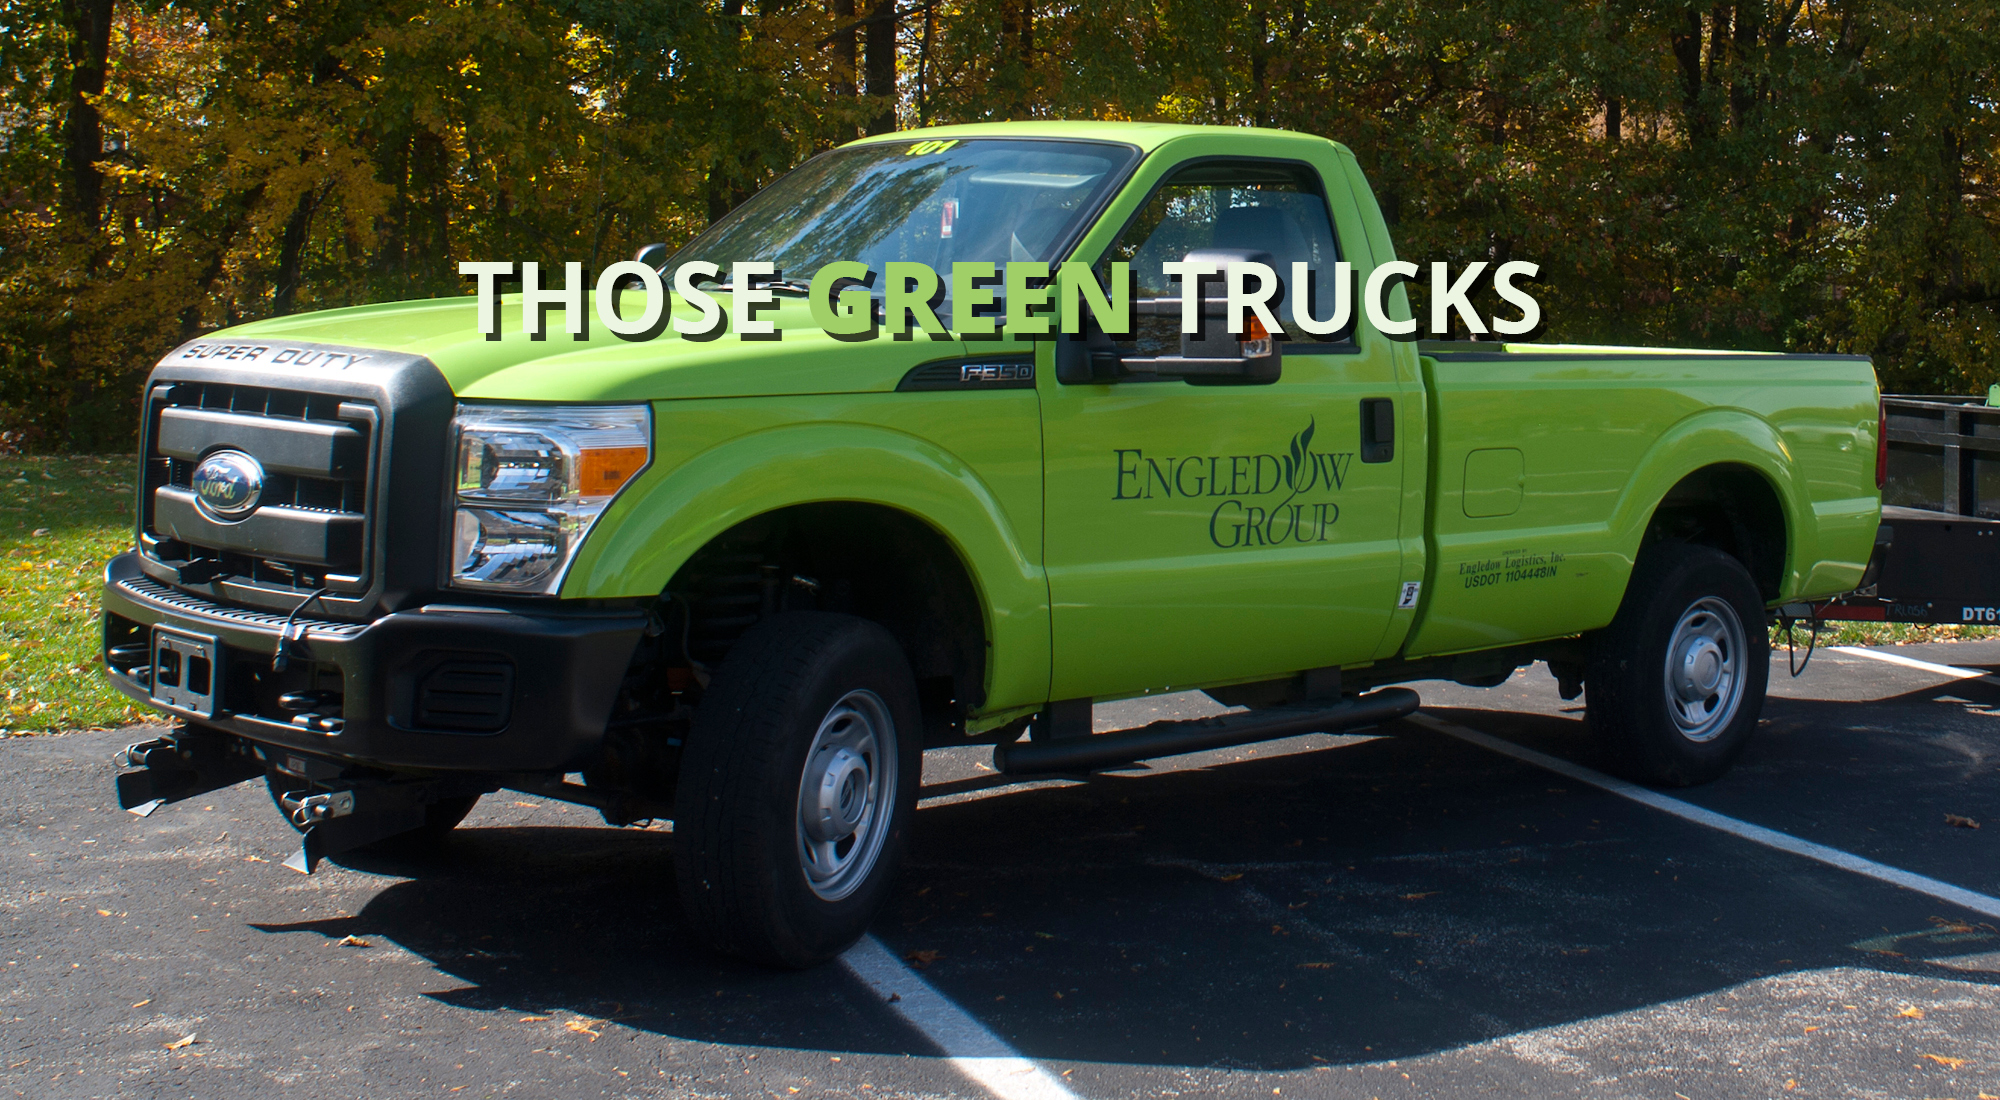 Those Green Trucks